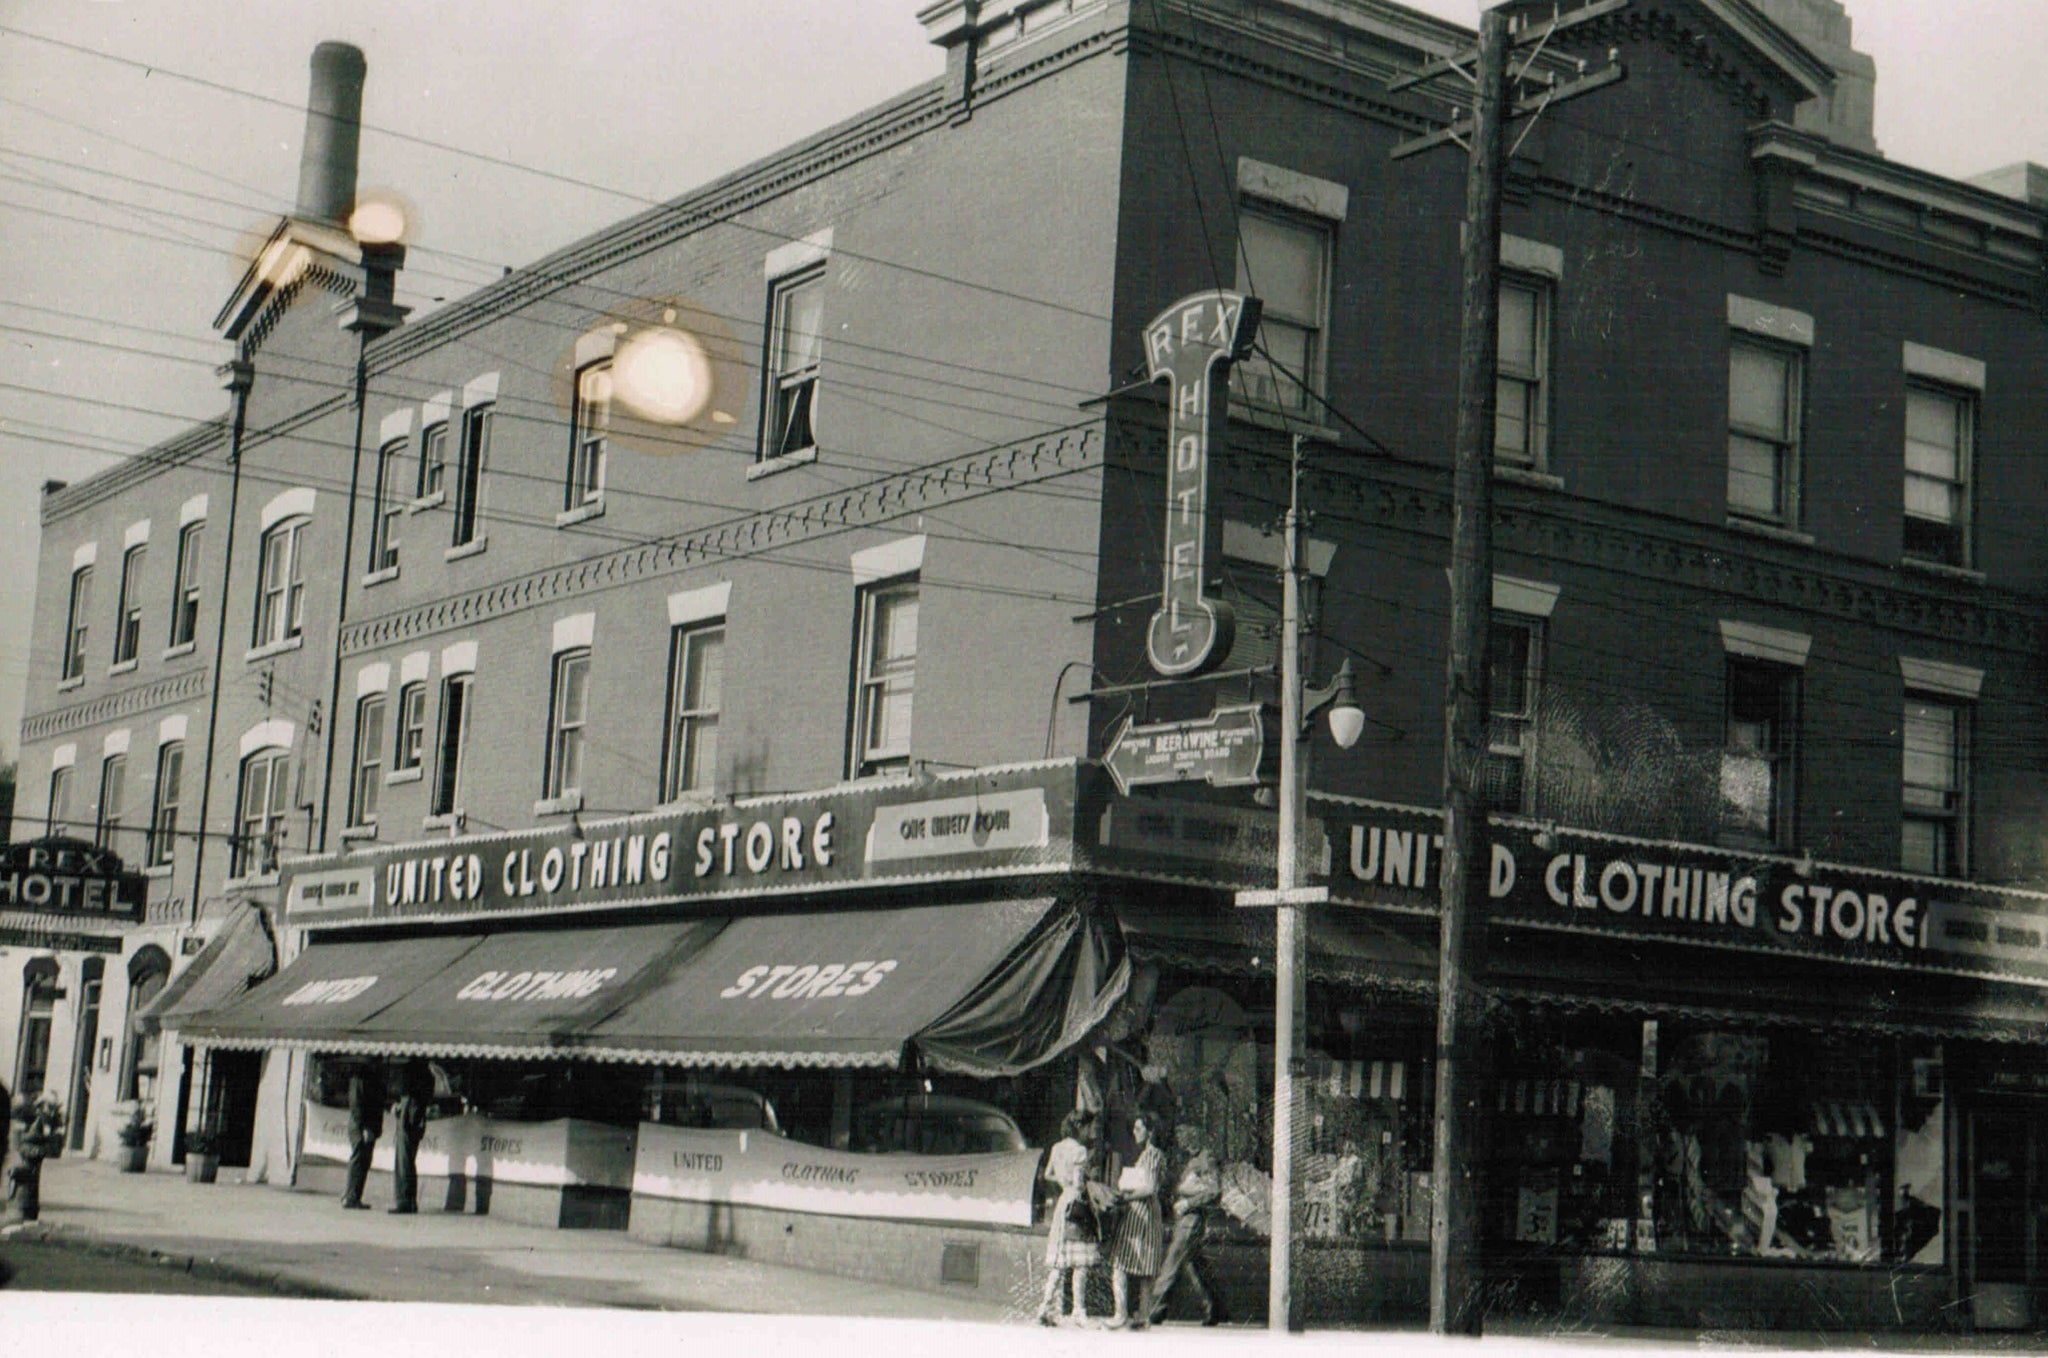 A picture of The Rex building in the 1950's, when it changed from being just clothing store to offering a beverage room and monthly accommodations.